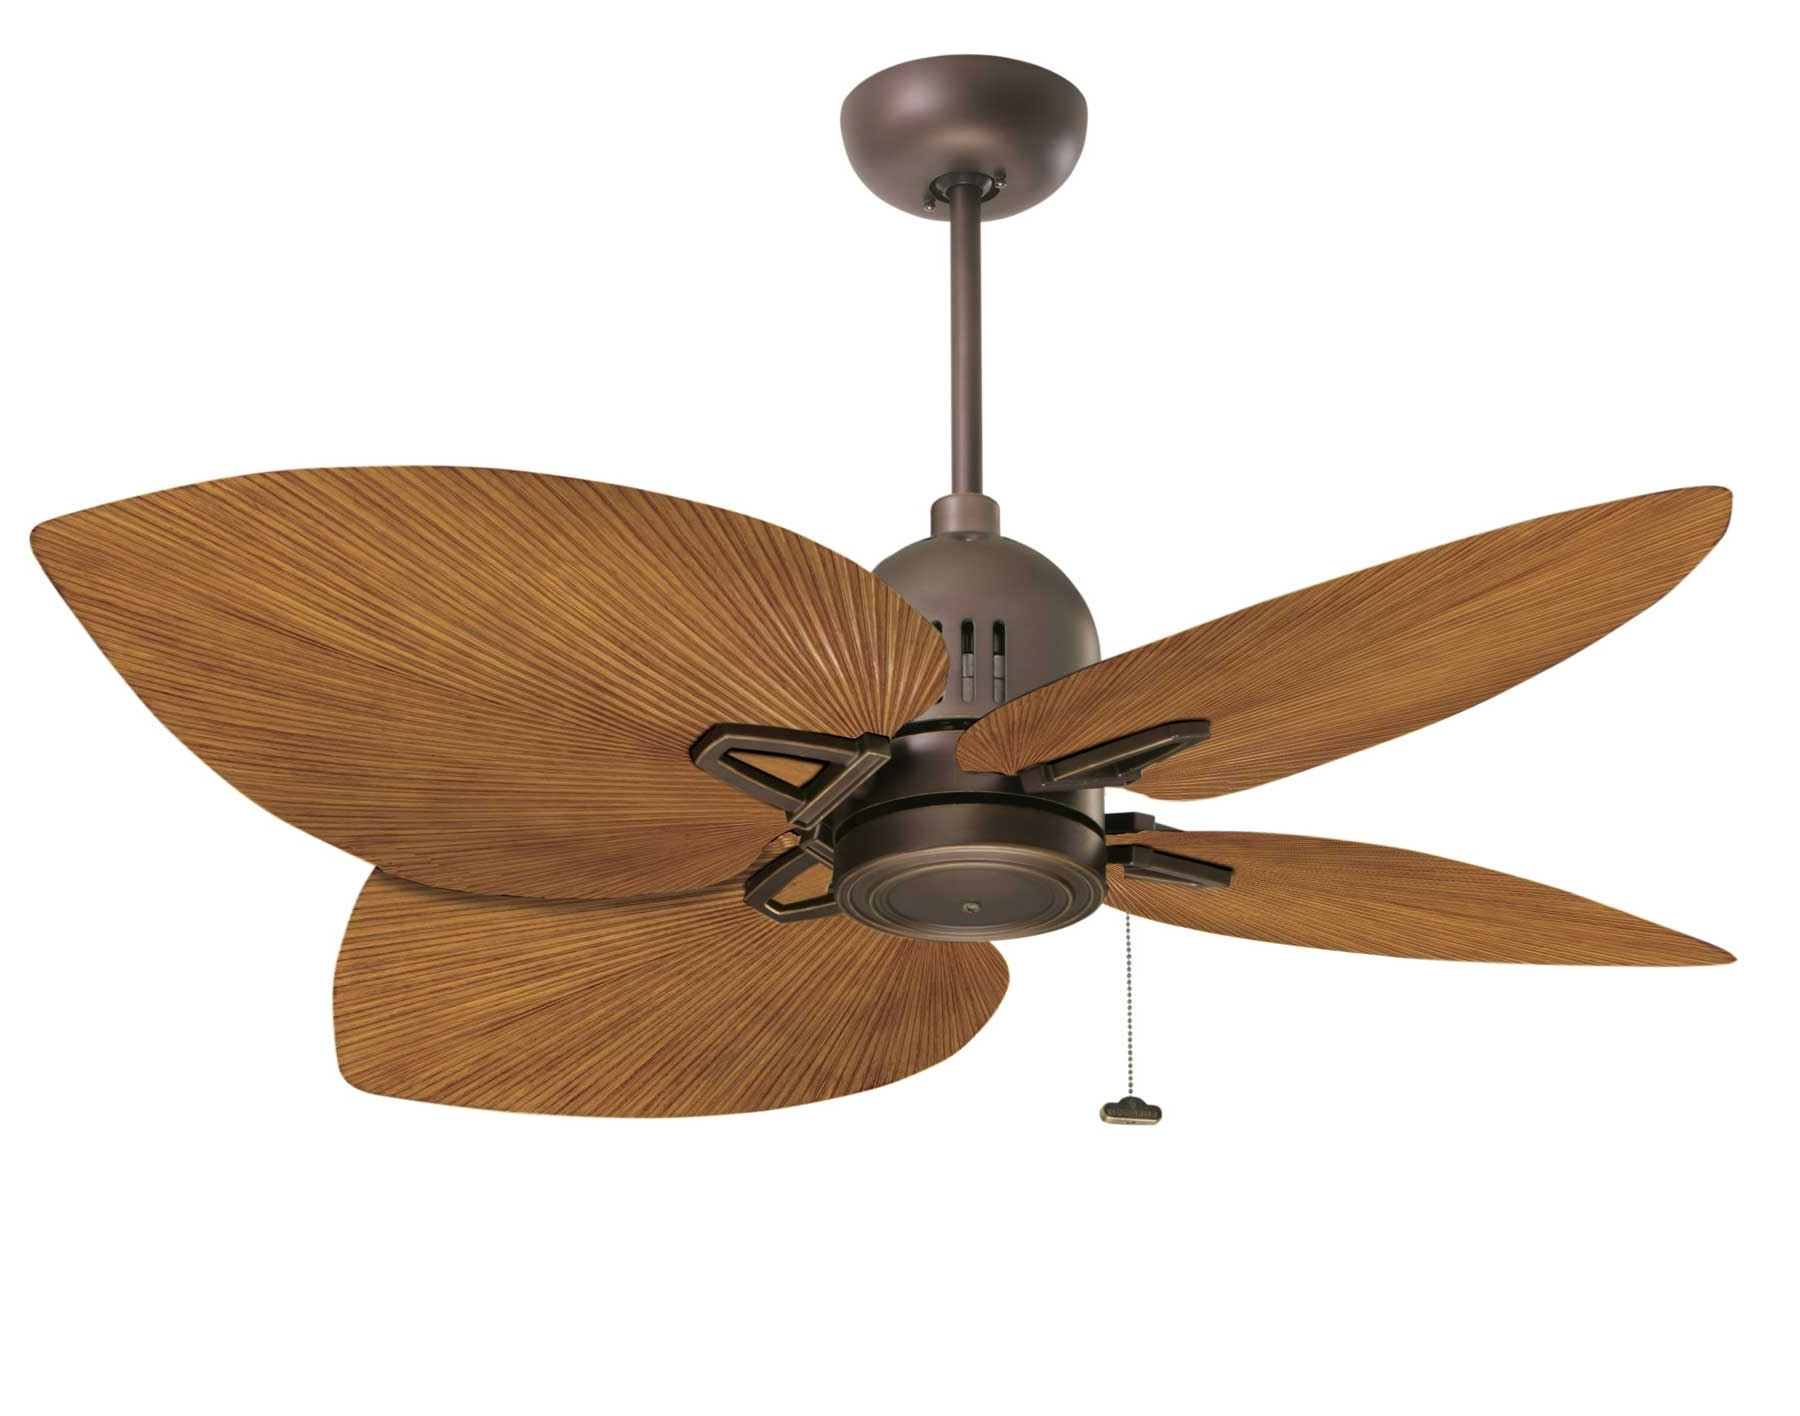 Outdoor Ceiling Fans With Covers Pertaining To Favorite Decor: Bring An Island Look Into Your Home With Cool Ceiling Fan (Gallery 12 of 20)